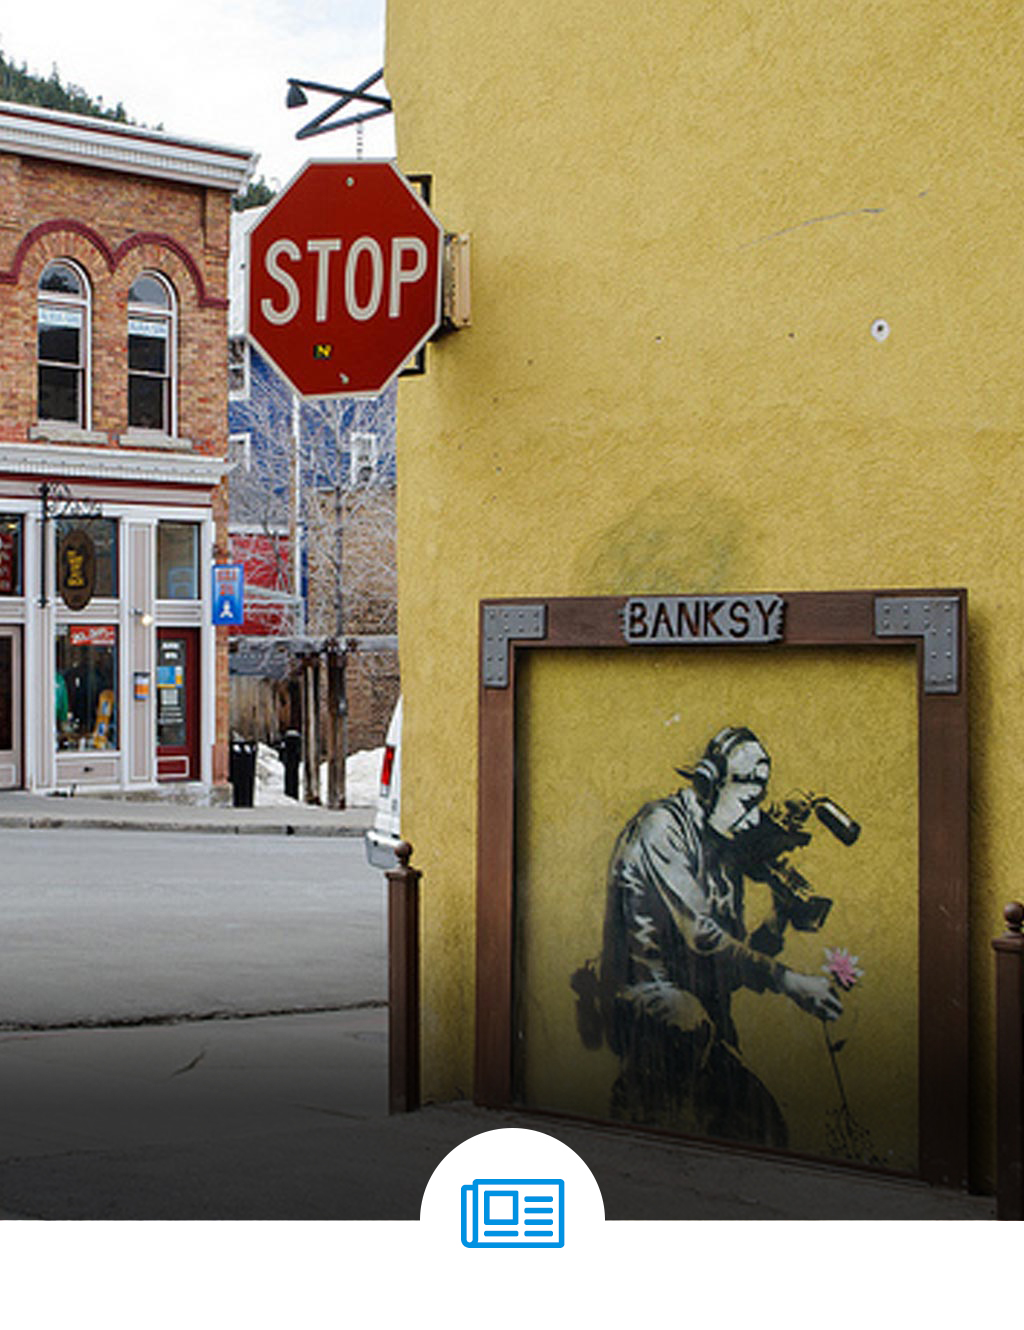 Banksy Graffiti Art on Main Street in Park City